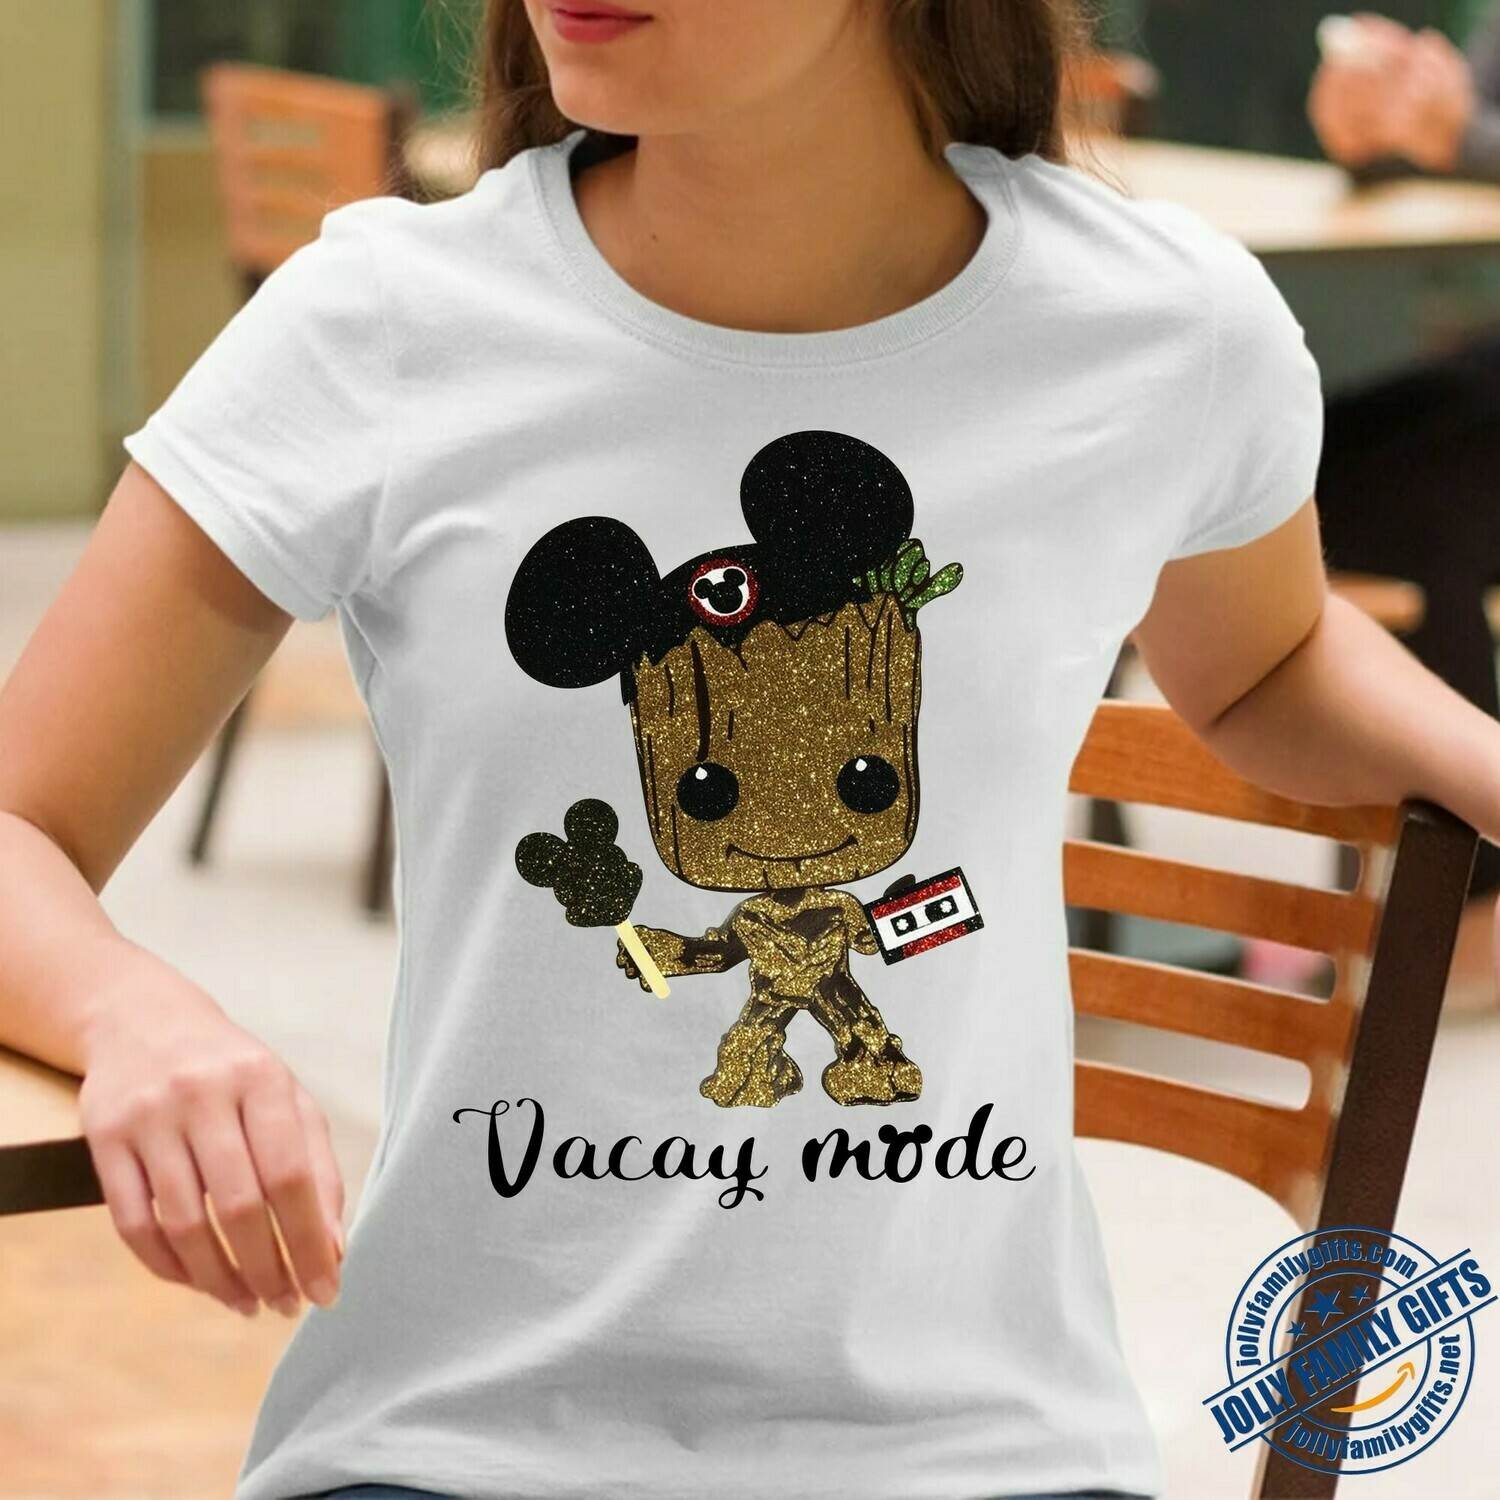 Baby Groot Mickey Ears Vacay Mode Guardians of the Galaxy Disney Movie Princess Walt Disney Family Vacation Go to Disney World  Unisex T-Shirt Hoodie Sweatshirt Sweater Plus Size for Ladies Women Men